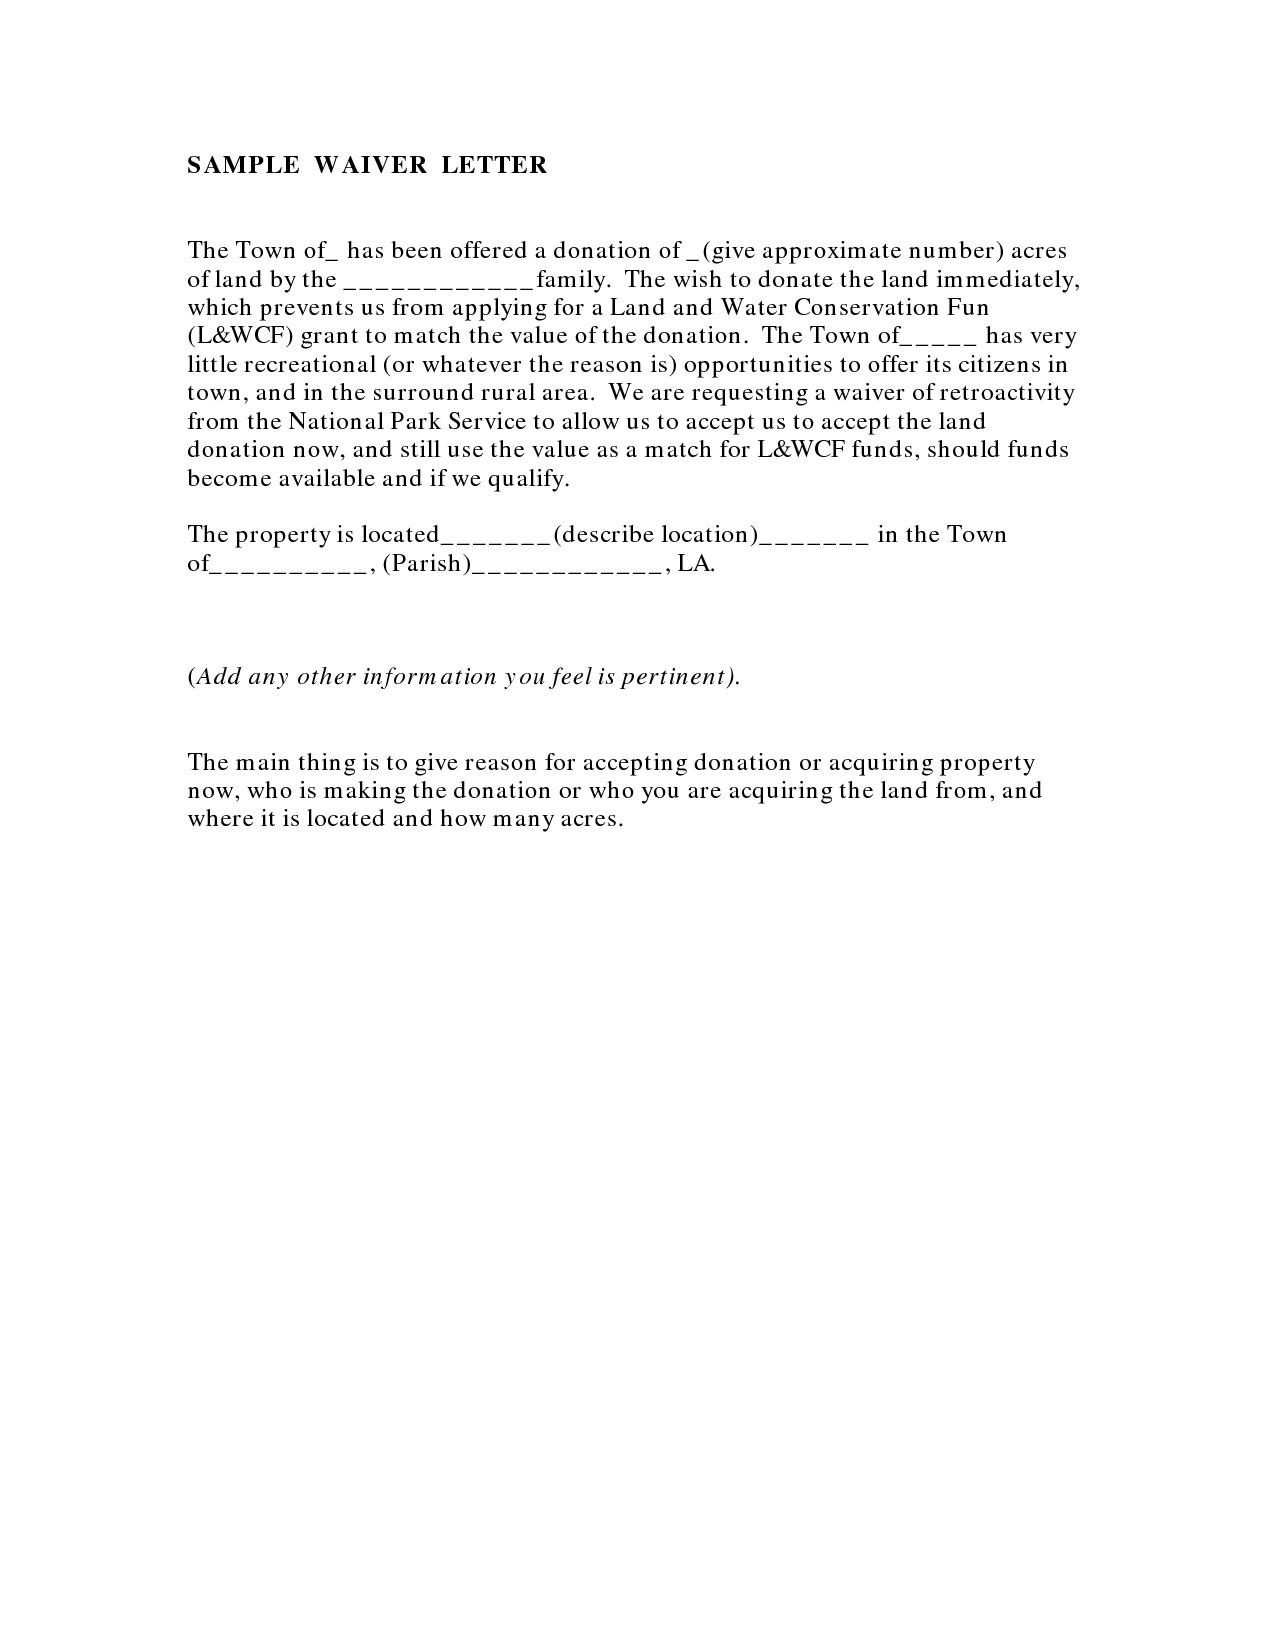 Doc Waiver Letter Template Waiver Form Template partial lien – Waiver Letter Template